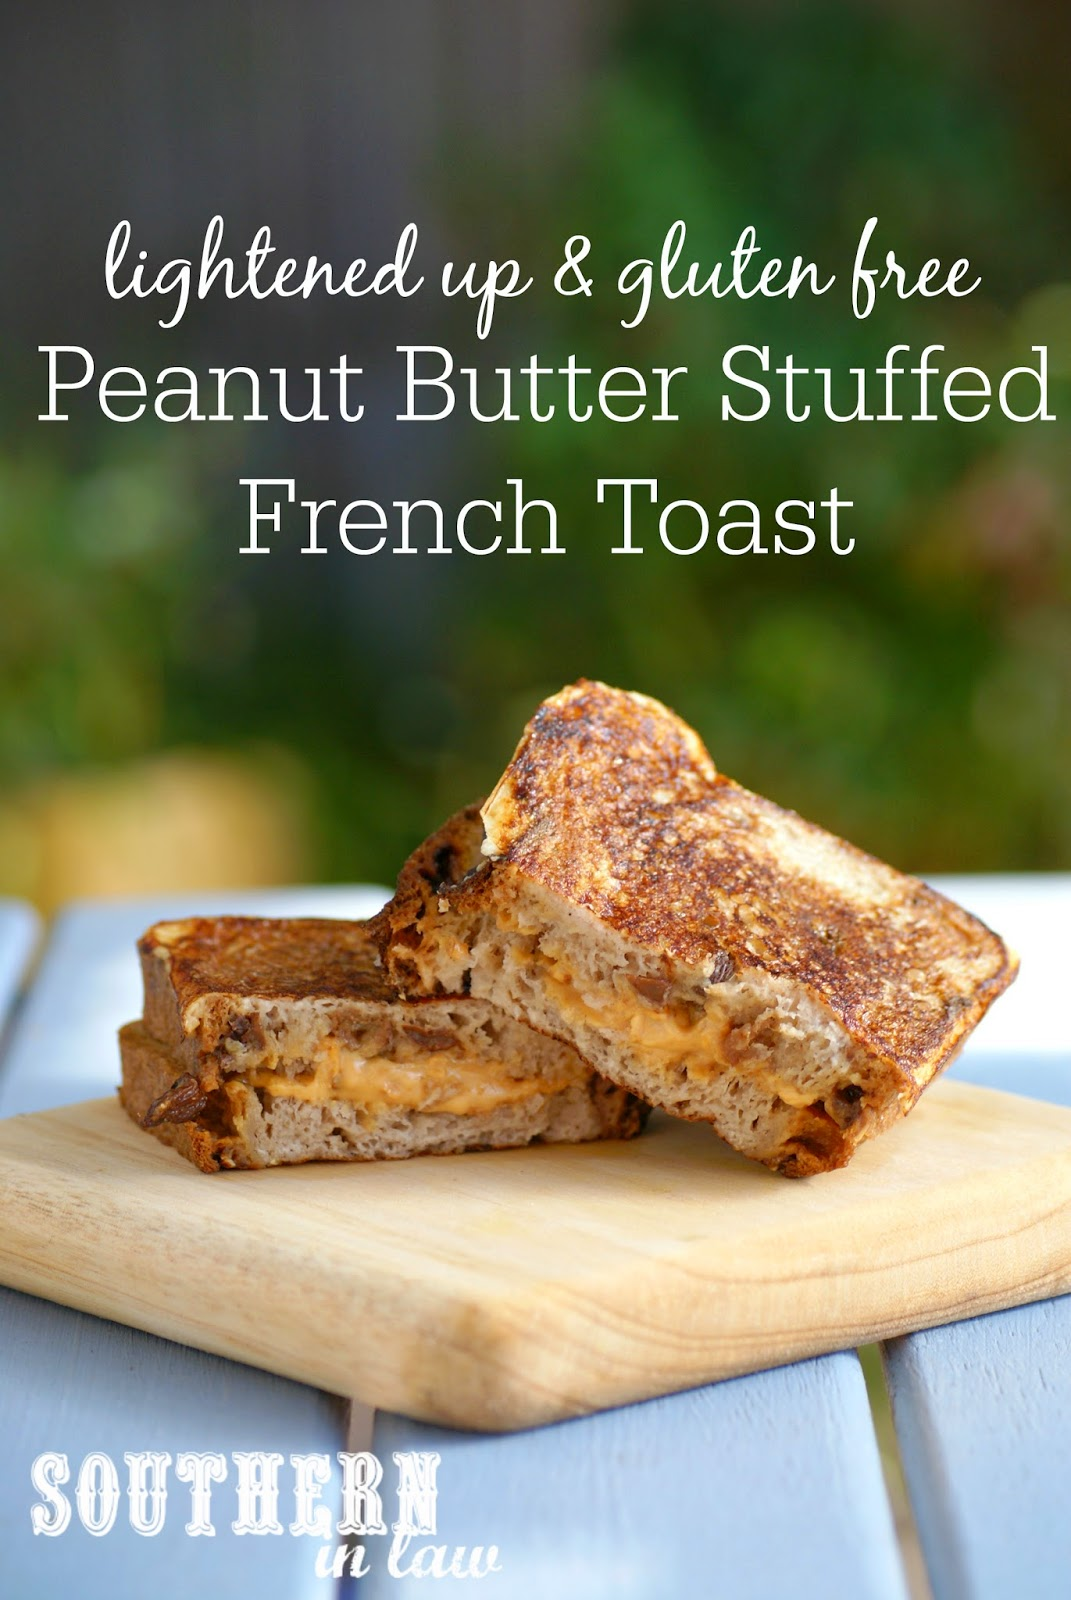 Low Fat Peanut Butter Stuffed French Toast Recipe on Cinnamon Raisin Bread - gluten free, low fat, healthy, sugar free, clean eating friendly